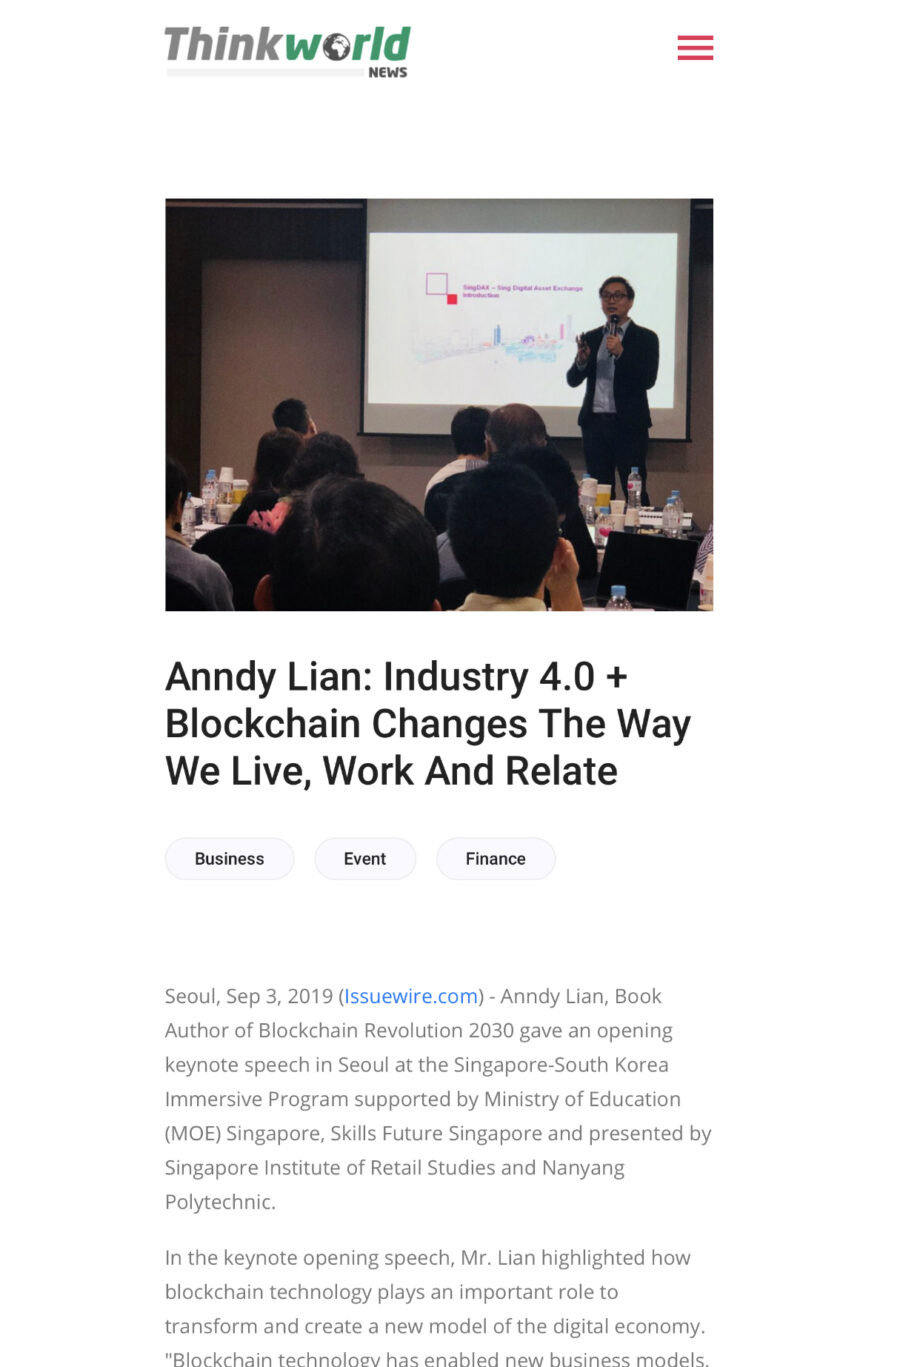 Think World News: Anndy Lian: Industry 4.0 + Blockchain Changes The Way We Live, Work And Relate